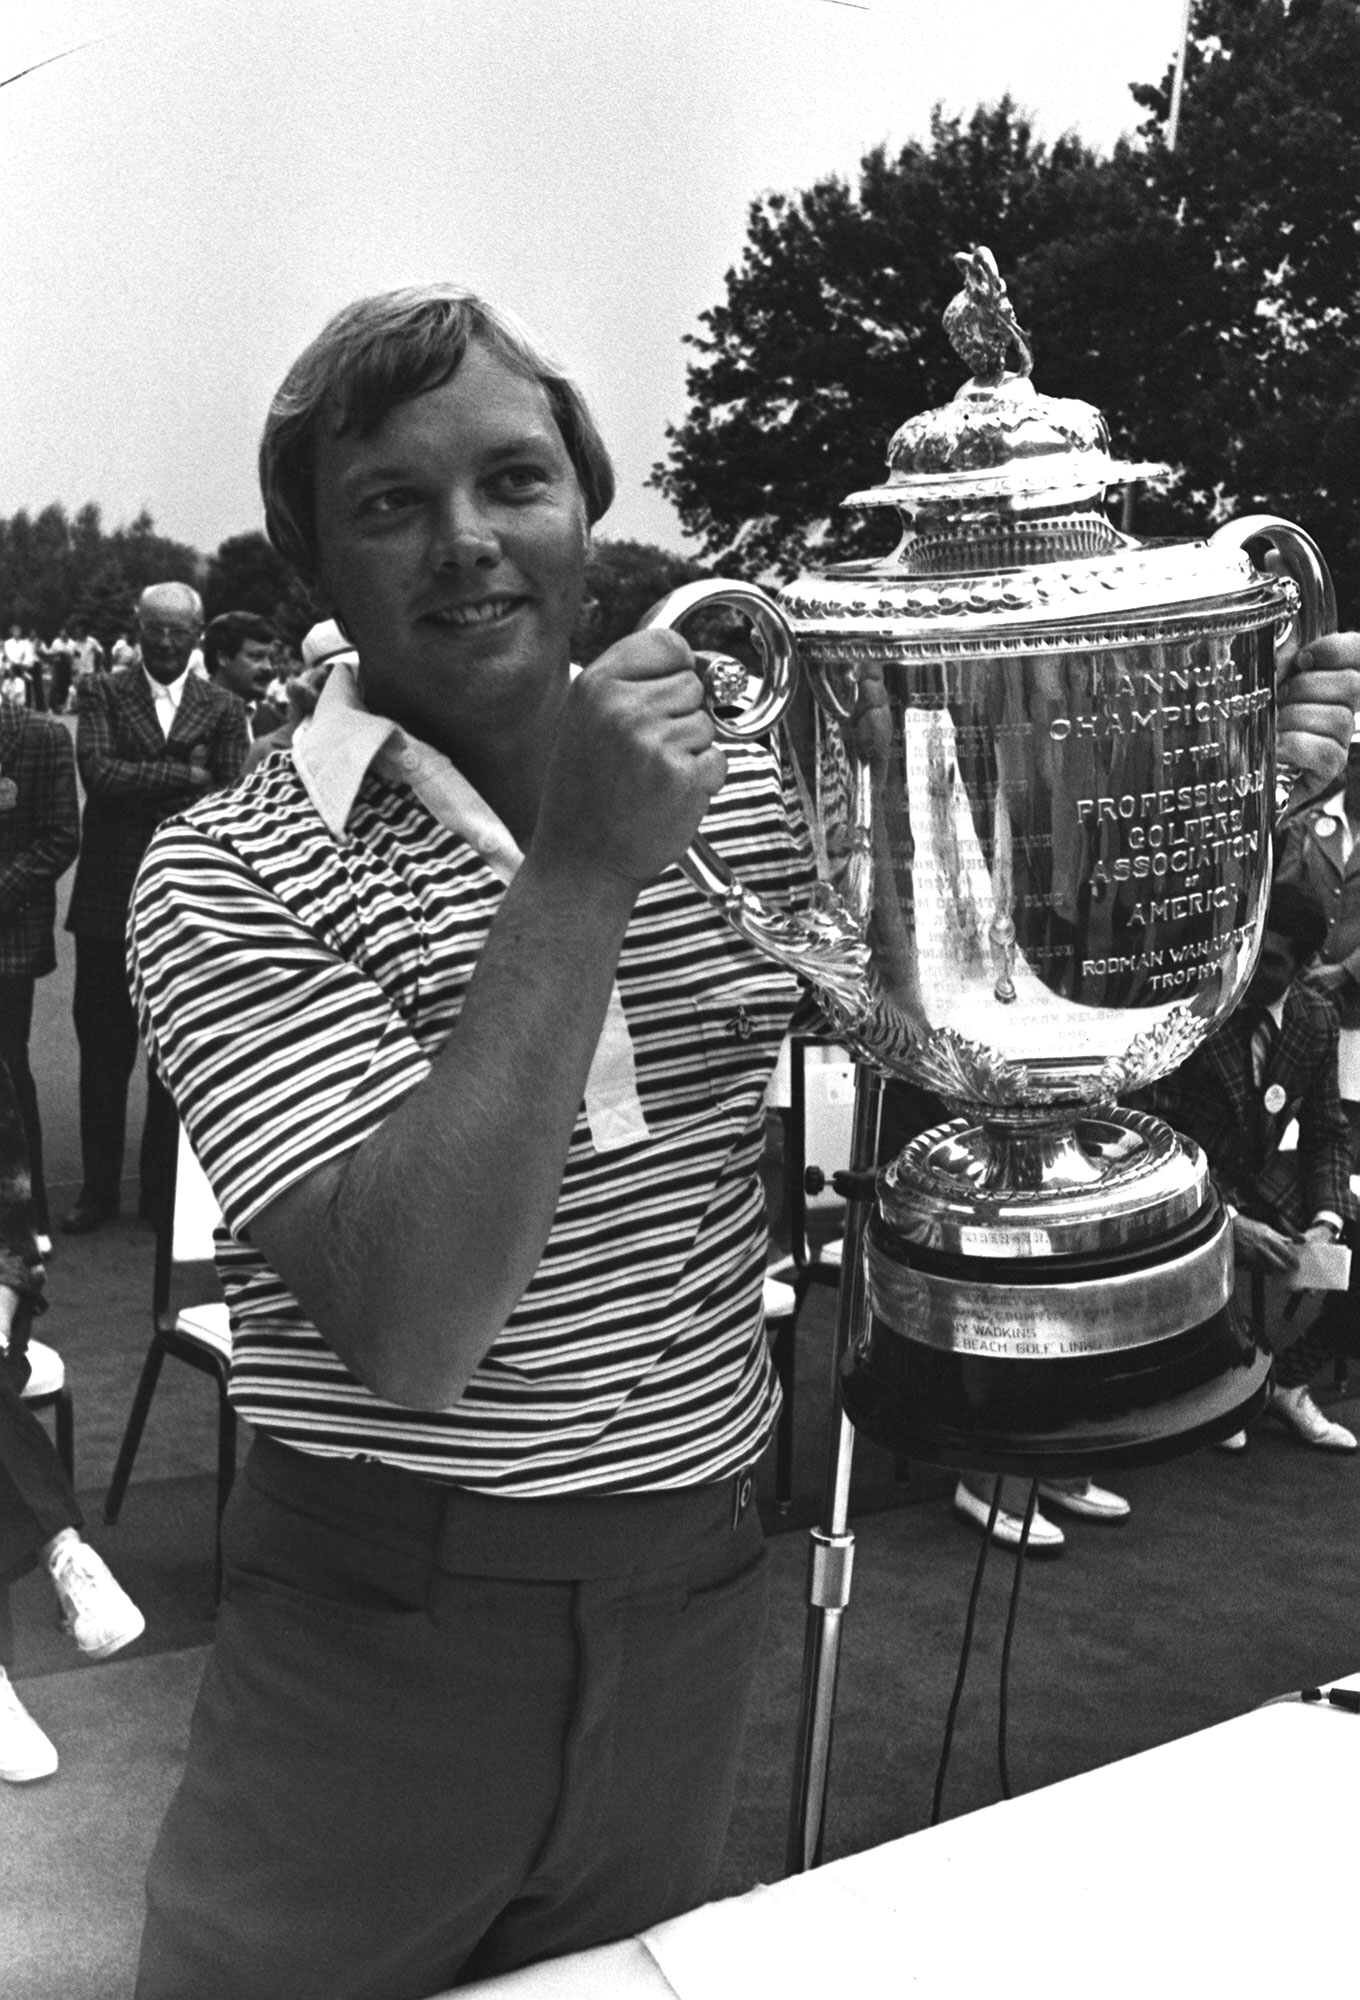 FILE - In this Aug. 6, 1978, file photo, John Mahaffey, of Kerrville, Texas, holds up the PGA Championship trophy after he won a sudden death playoff against Tom Watson and Jerry Pate in Oakmont, Pa. Mahaffey is among the best five players to stage great